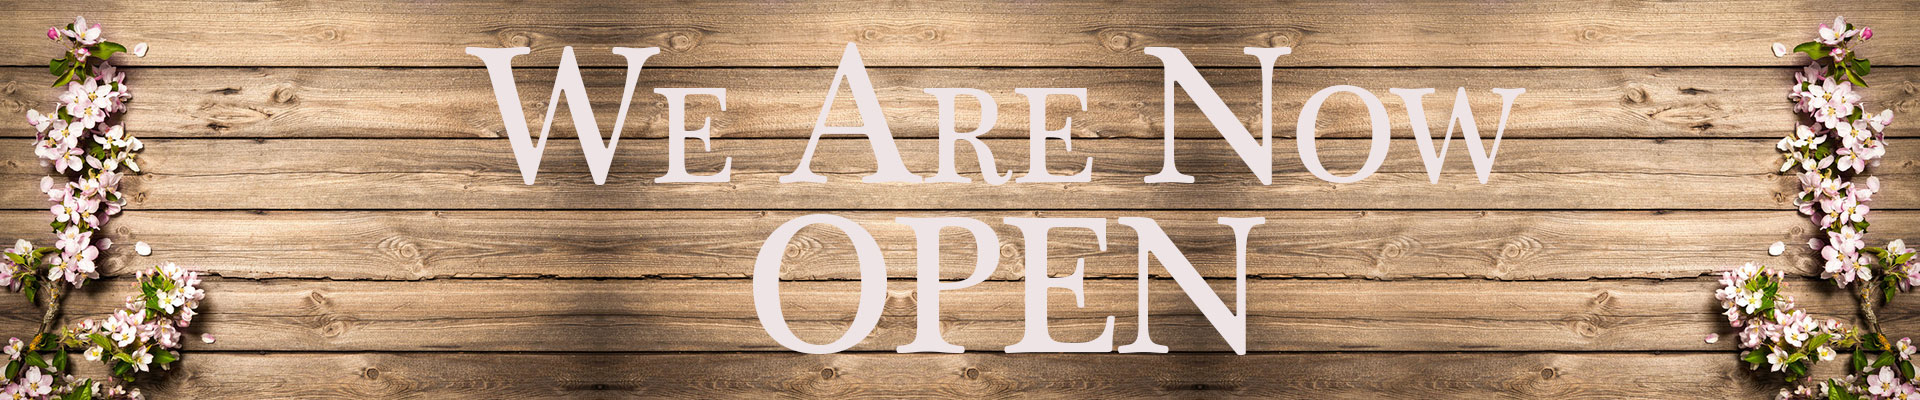 WE ARE NOW OPEN